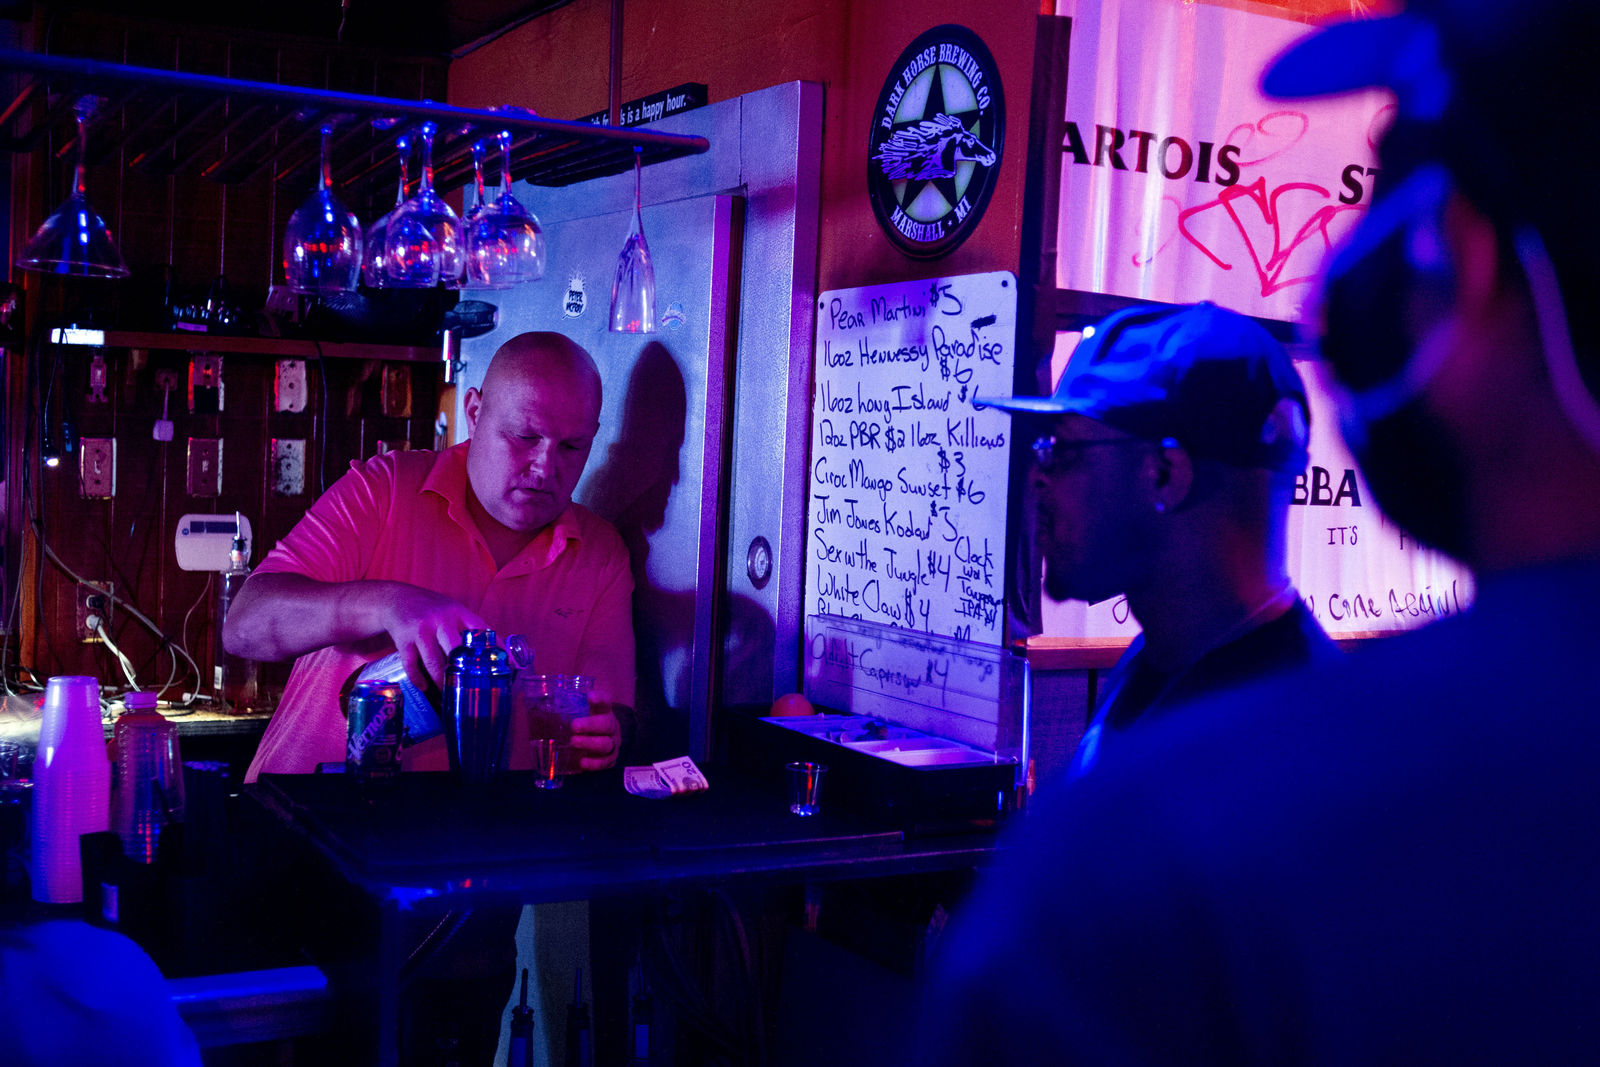 FILE - In this  June 8, 2020, file photo, Rodney Ott, owner of The Loft, makes mixed drinks from behind the bar for patrons as he reopens fully for the first time amid the coronavirus outbreak in downtown Flint, Mich. Authorities are closing honky tonks, bars and other drinking establishments in some parts of the U.S. to stem the surge of COVID-19 infections — a move backed by sound science about risk factors that go beyond wearing or not wearing masks. (Jake May/The Flint Journal via AP, File)